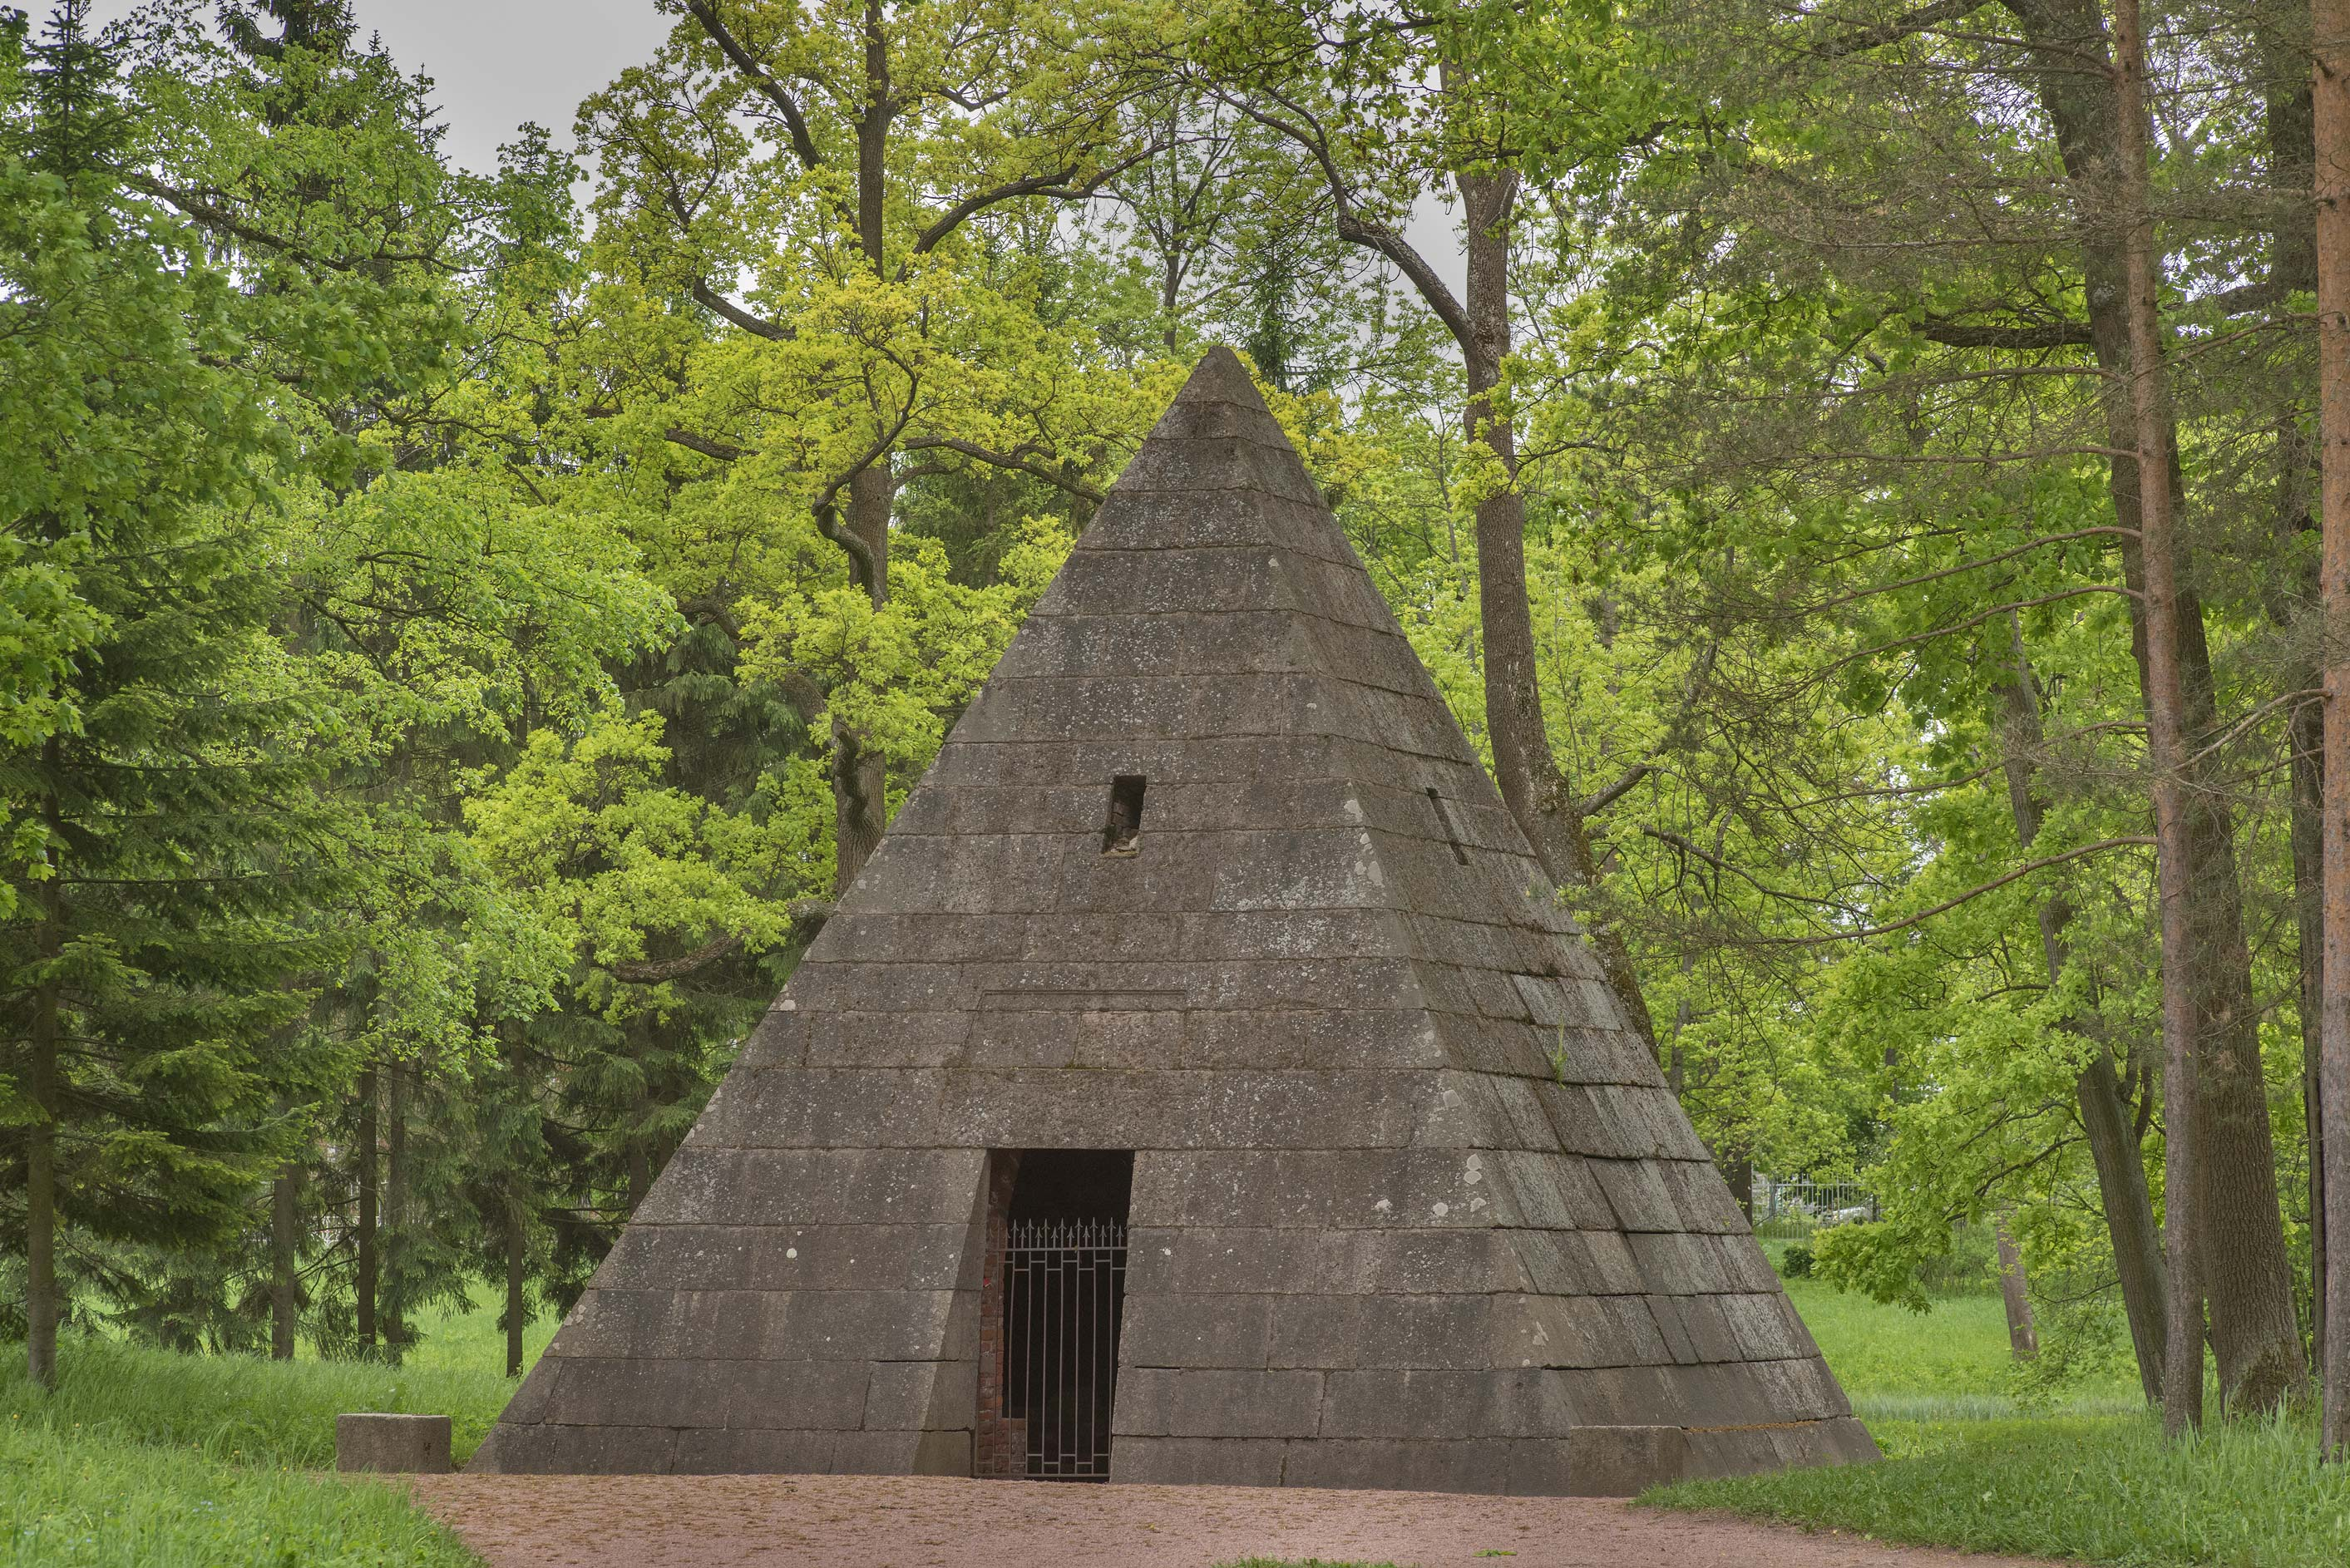 Pyramid (pet cemetery) in Catherine Park. Pushkin...Selo) near St.Petersburg, Russia